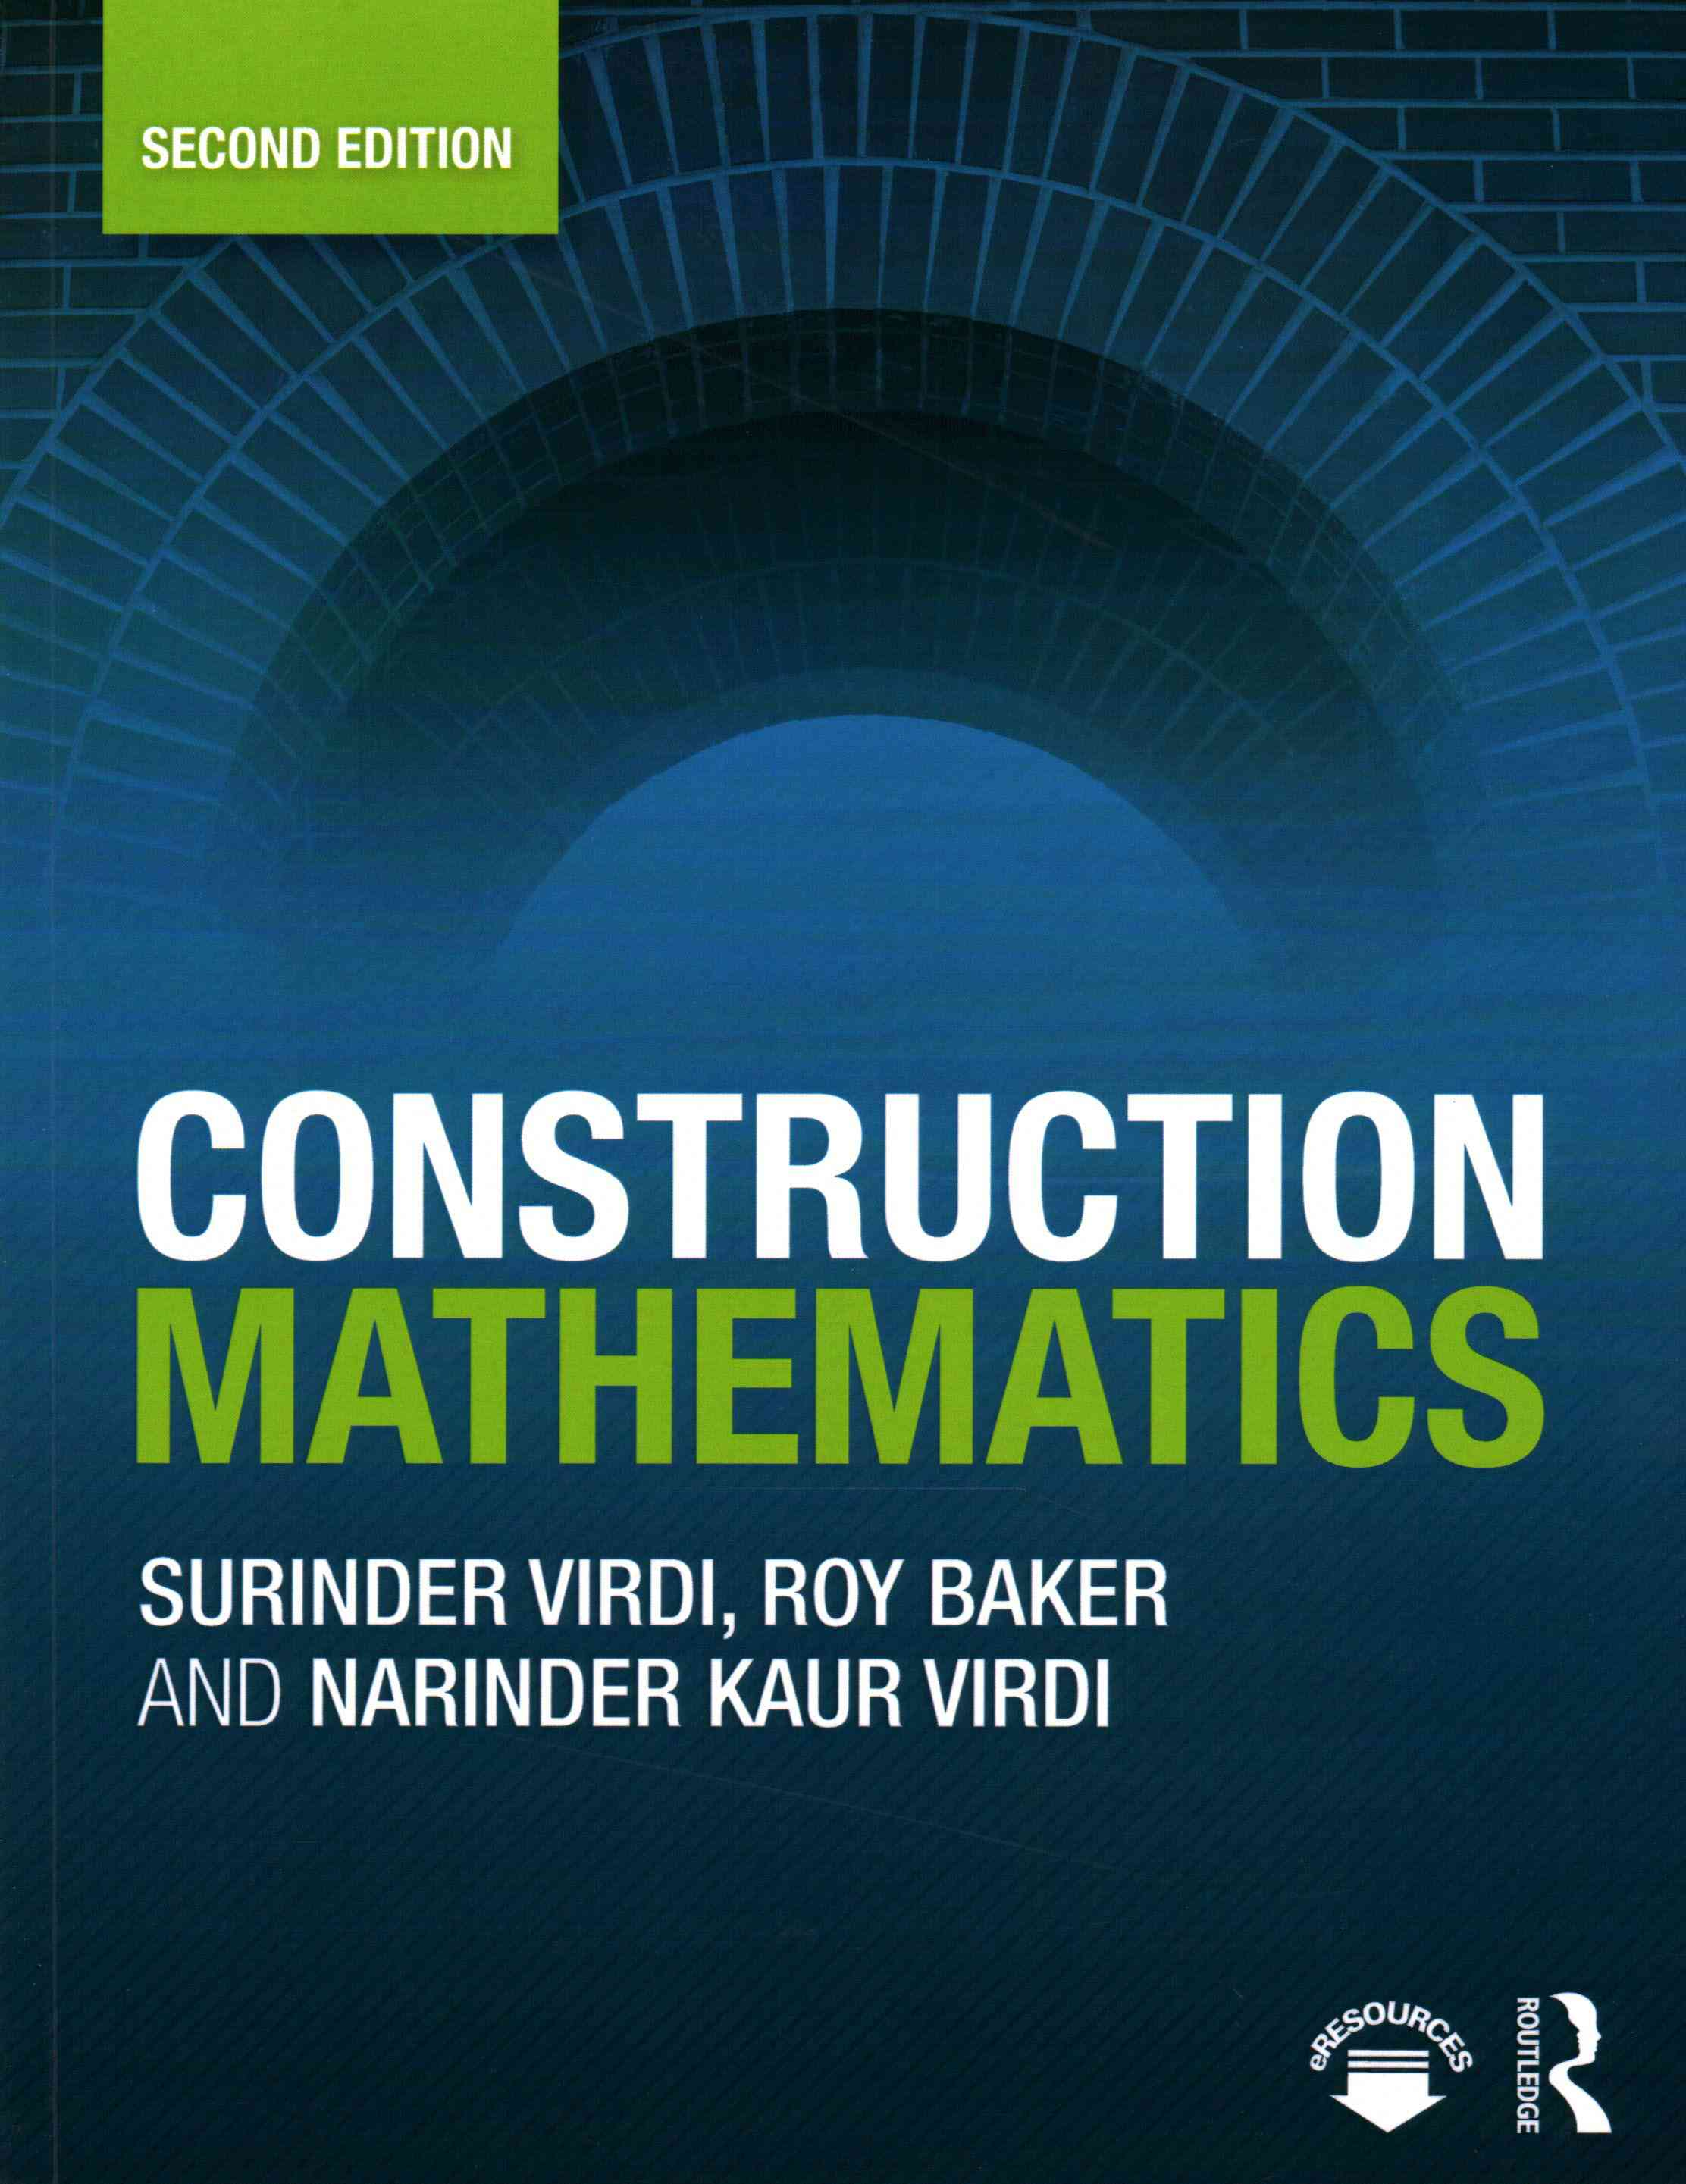 Construction Mathematics By Virdi, Surinder/ Baker, Roy/ Virdi, Narinder Kaur